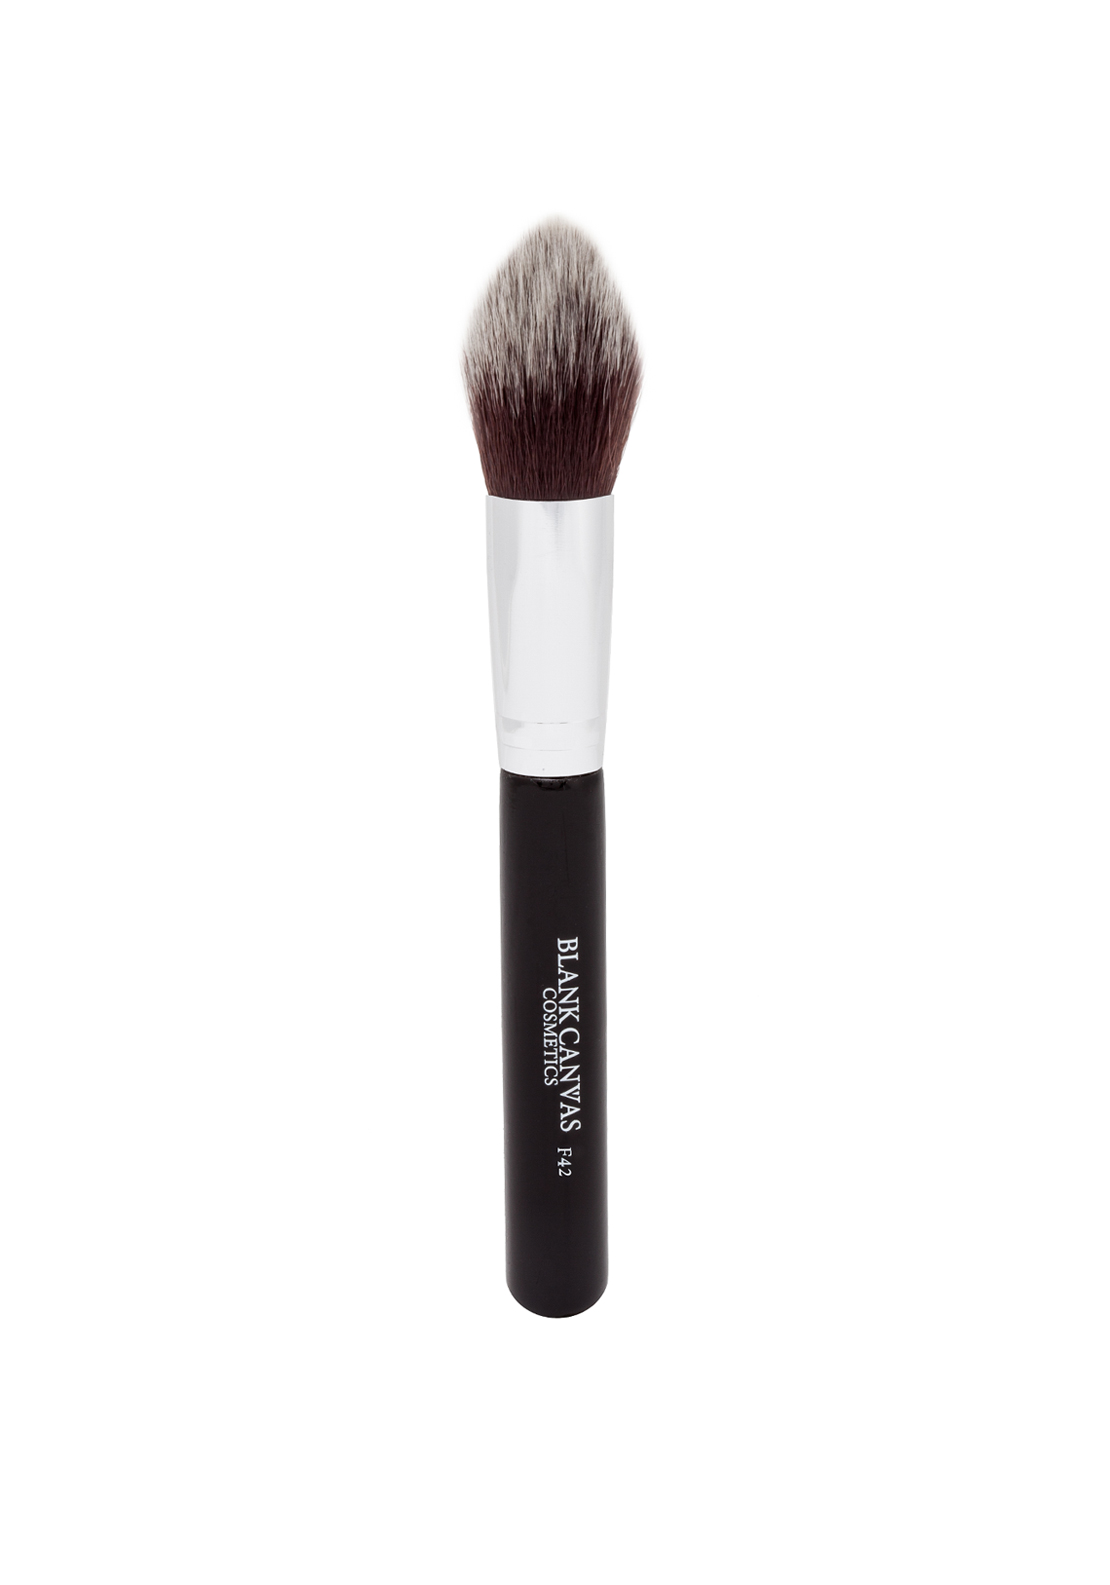 Blank Canvas Cosmetics F42 Multi Purpose Large Tapered Contour / Powder Brush